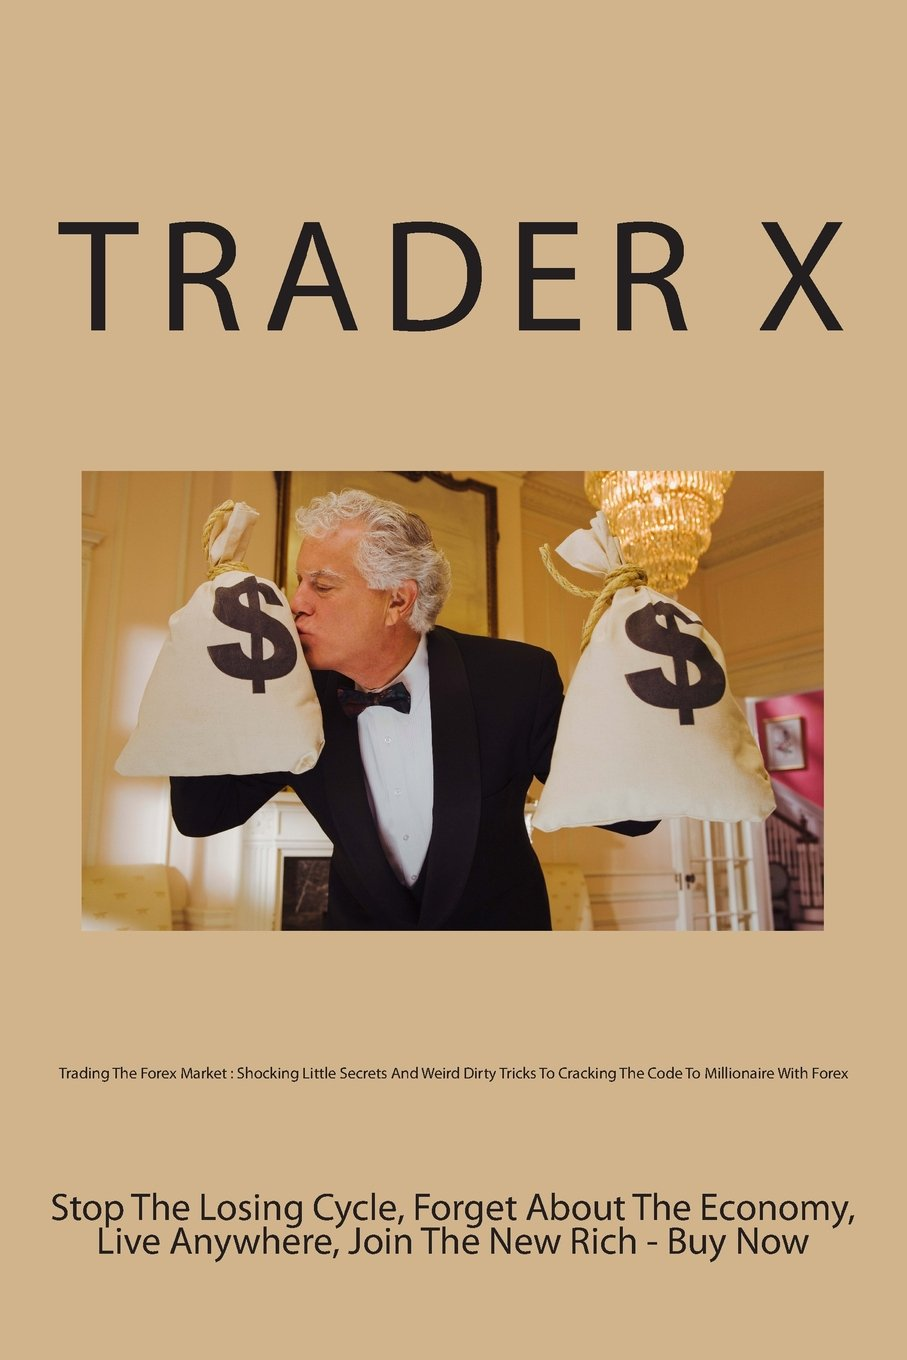 Download Trading The Forex Market : Shocking Little Secrets And Weird Dirty Tricks To Cracking The Code To Millionaire With Forex - Buy Now: Stop The Losing ... The Economy, Live Anywhere, Join The New Rich PDF